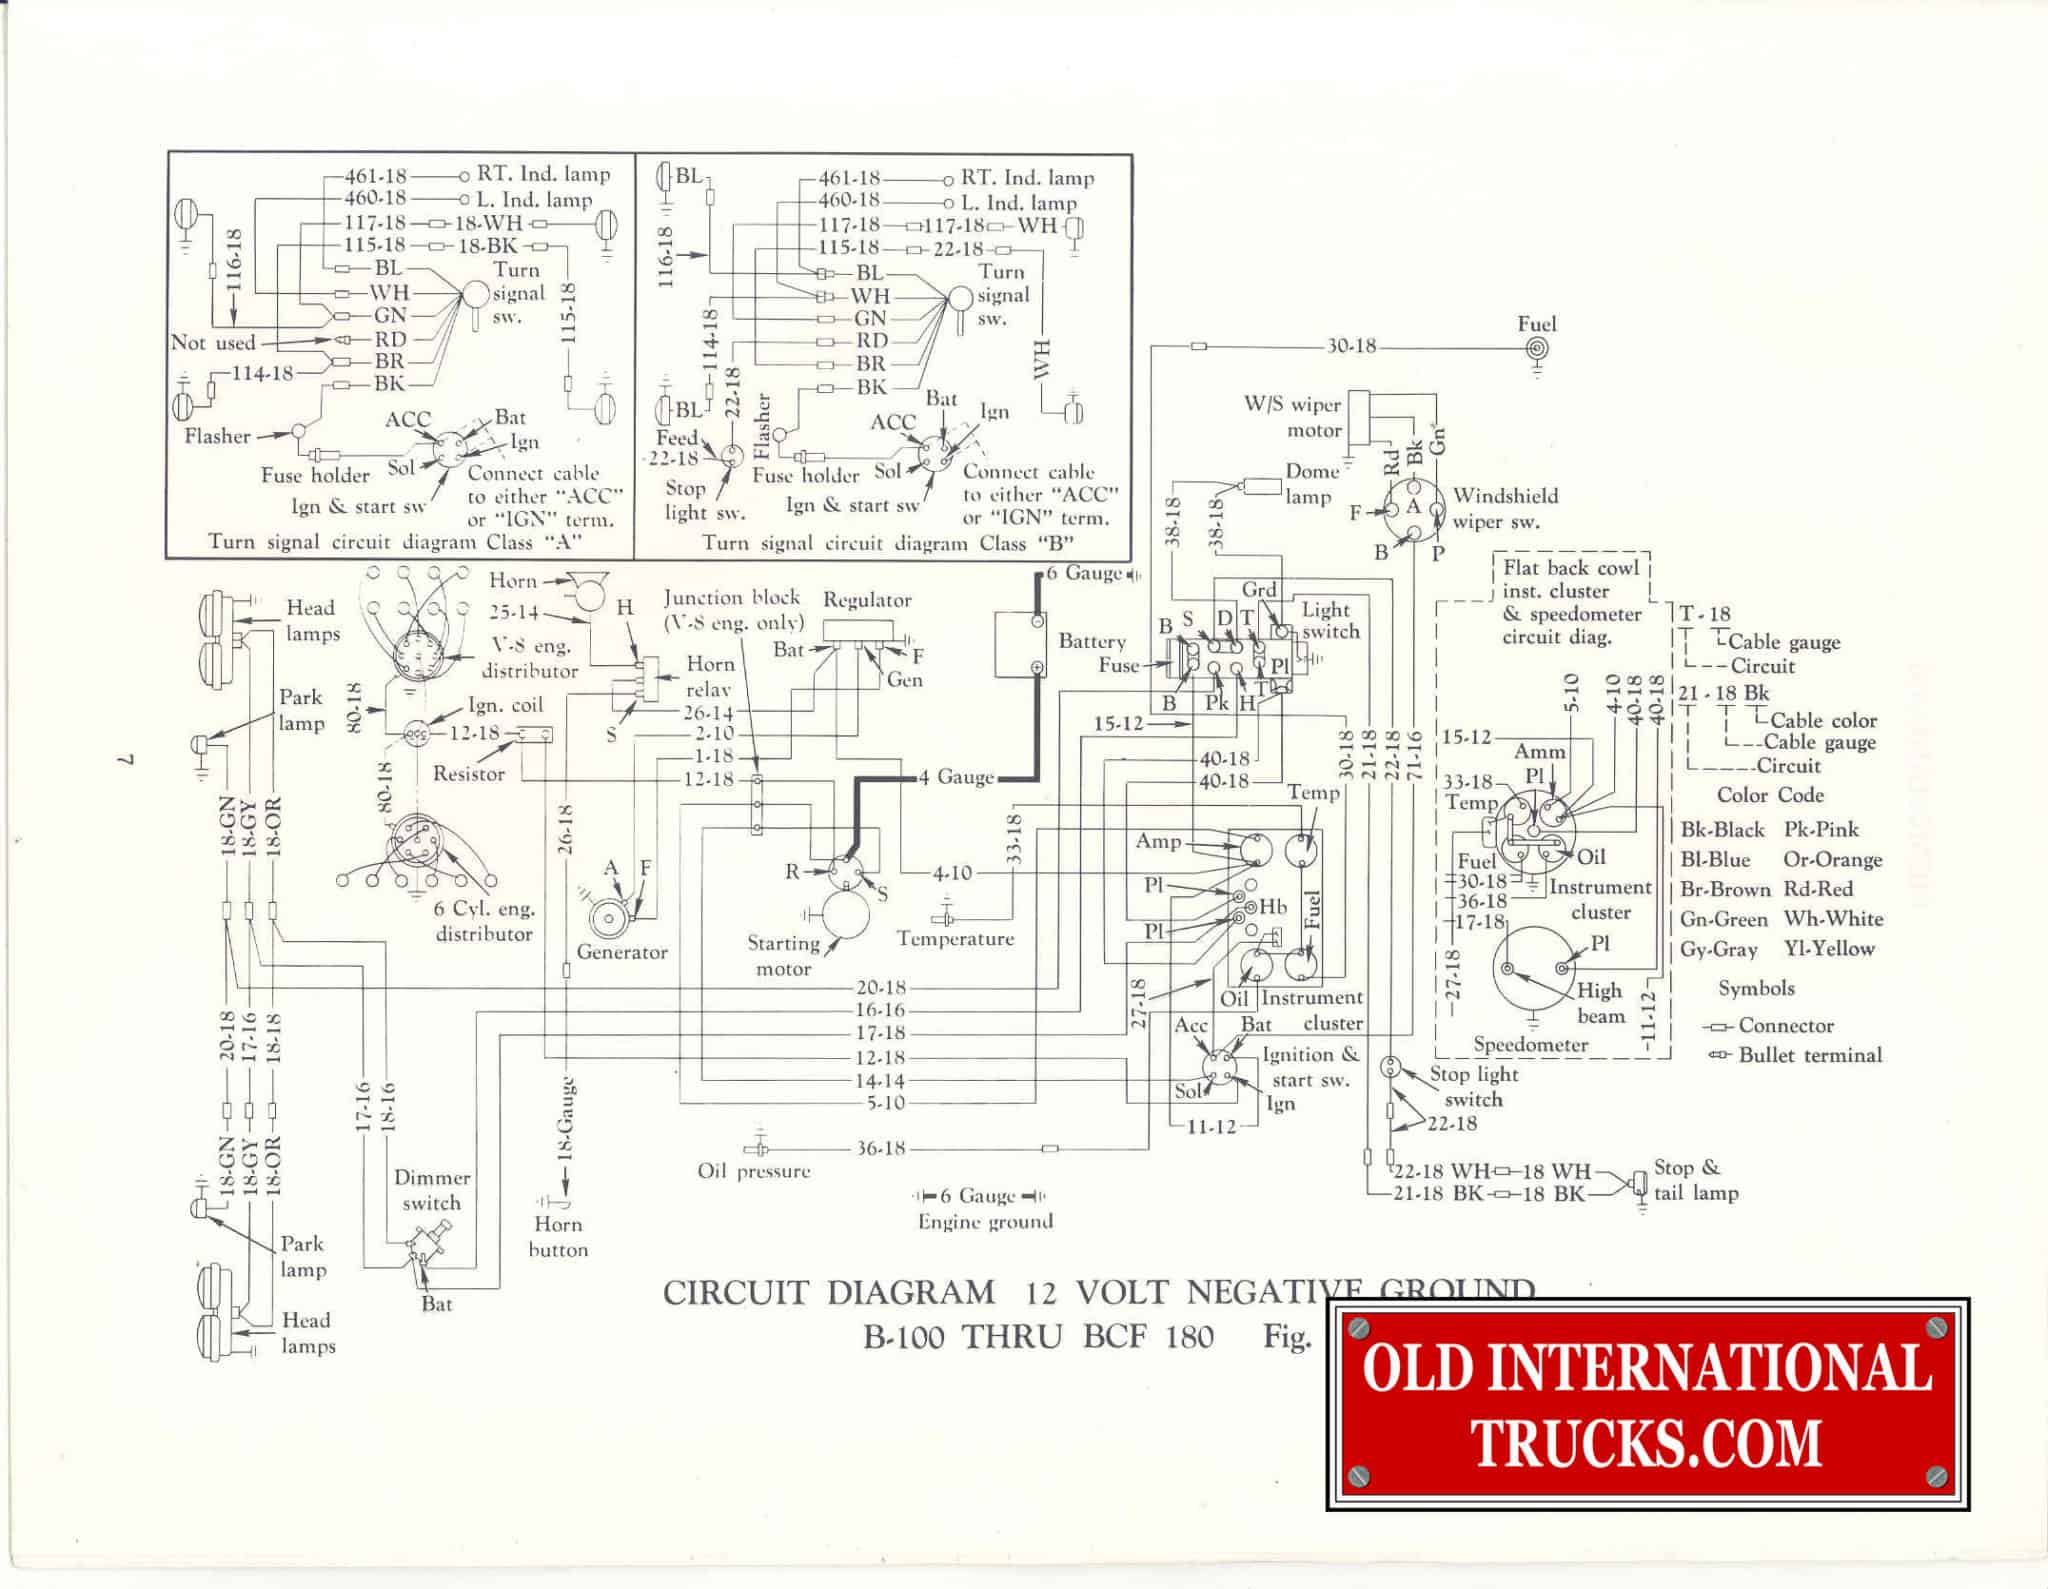 1960 international b-100 travelall • old international ... wiring diagram for 1969 nova free download wire diagram for 1969 international pickup